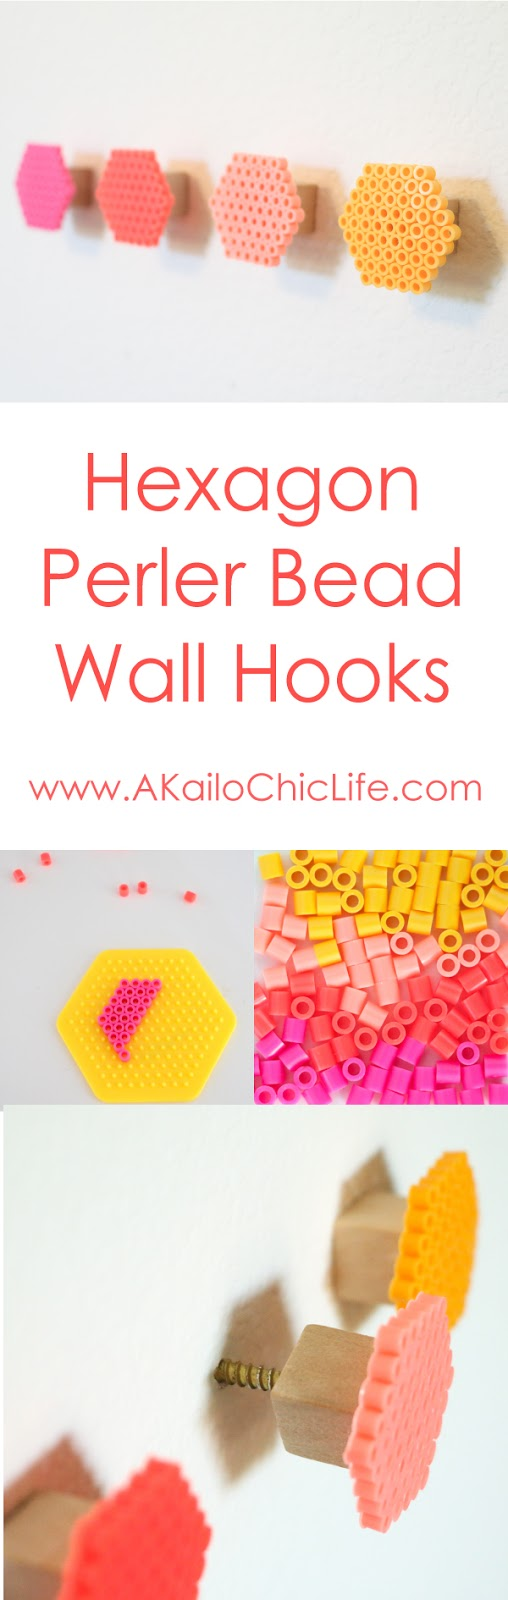 Use colorful Perler beads to create ombre hexagon wall hooks. Fun kids craft or teen bedroom decoration idea